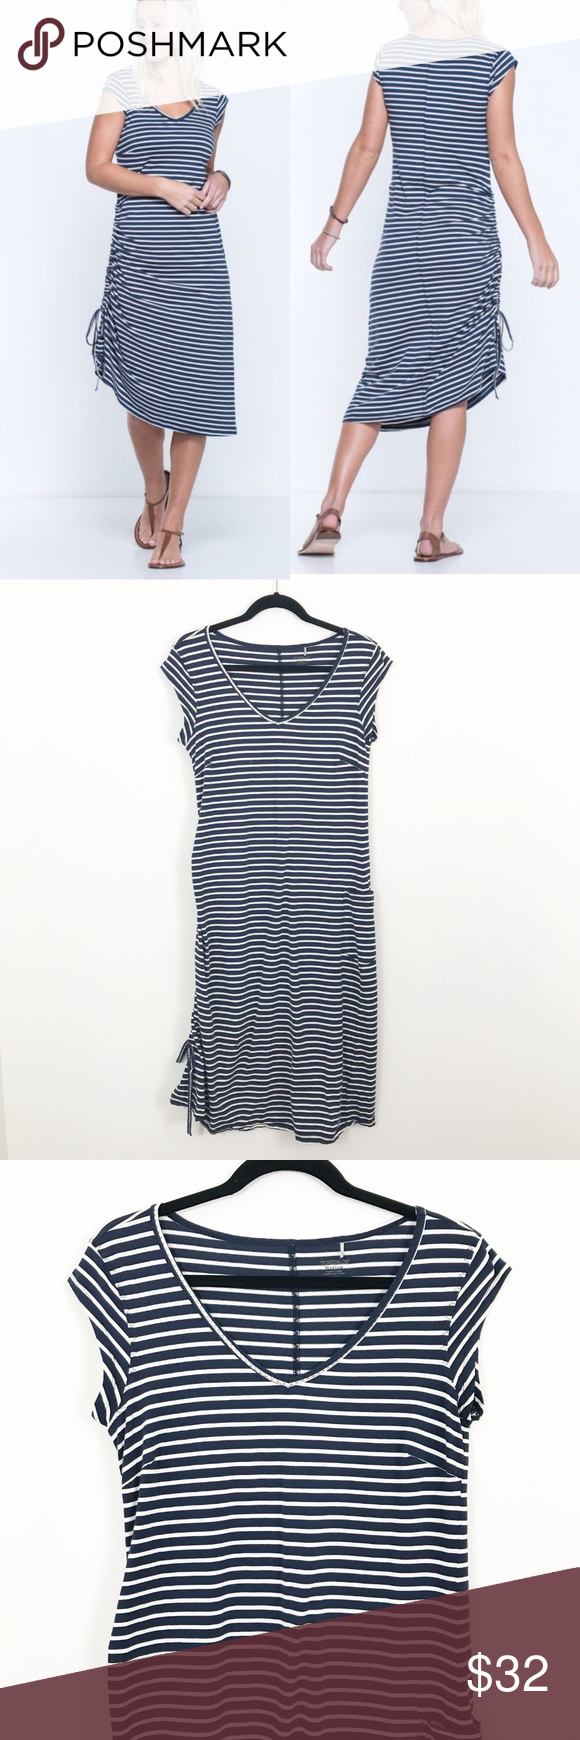 Toad & Co Muse Navy Blue White Stripe Dress Toad & Co Muse